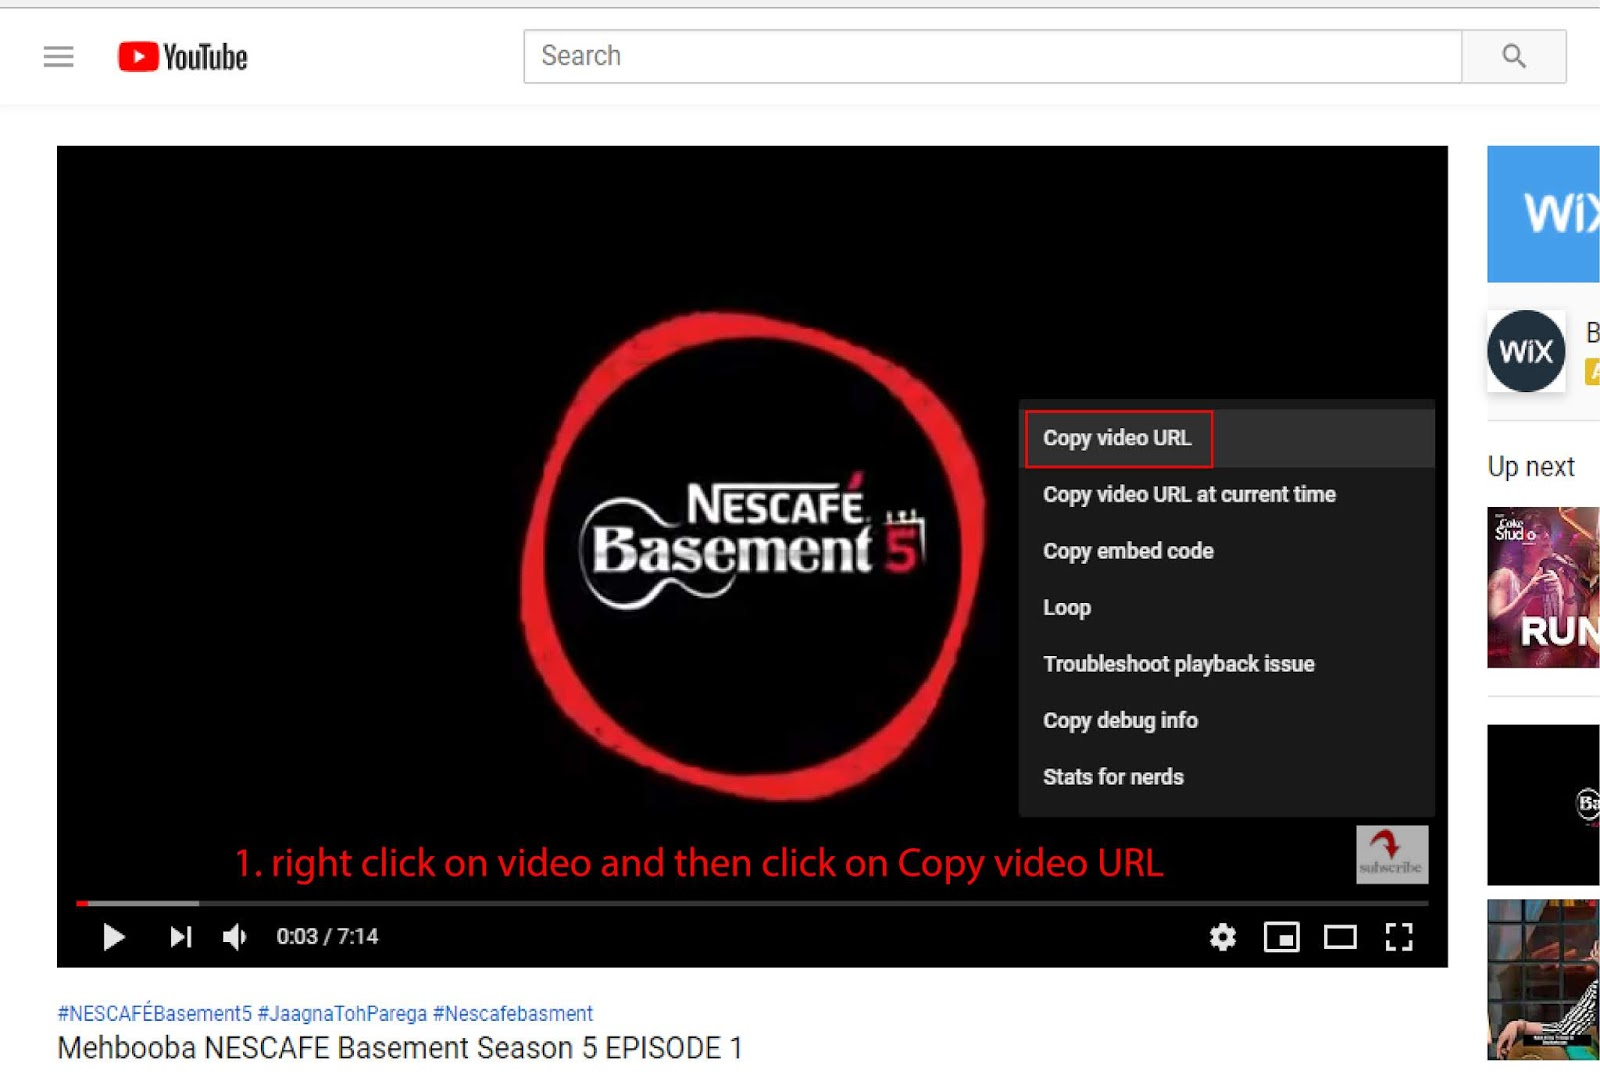 How to download YouTube videos for free (Youtube Video